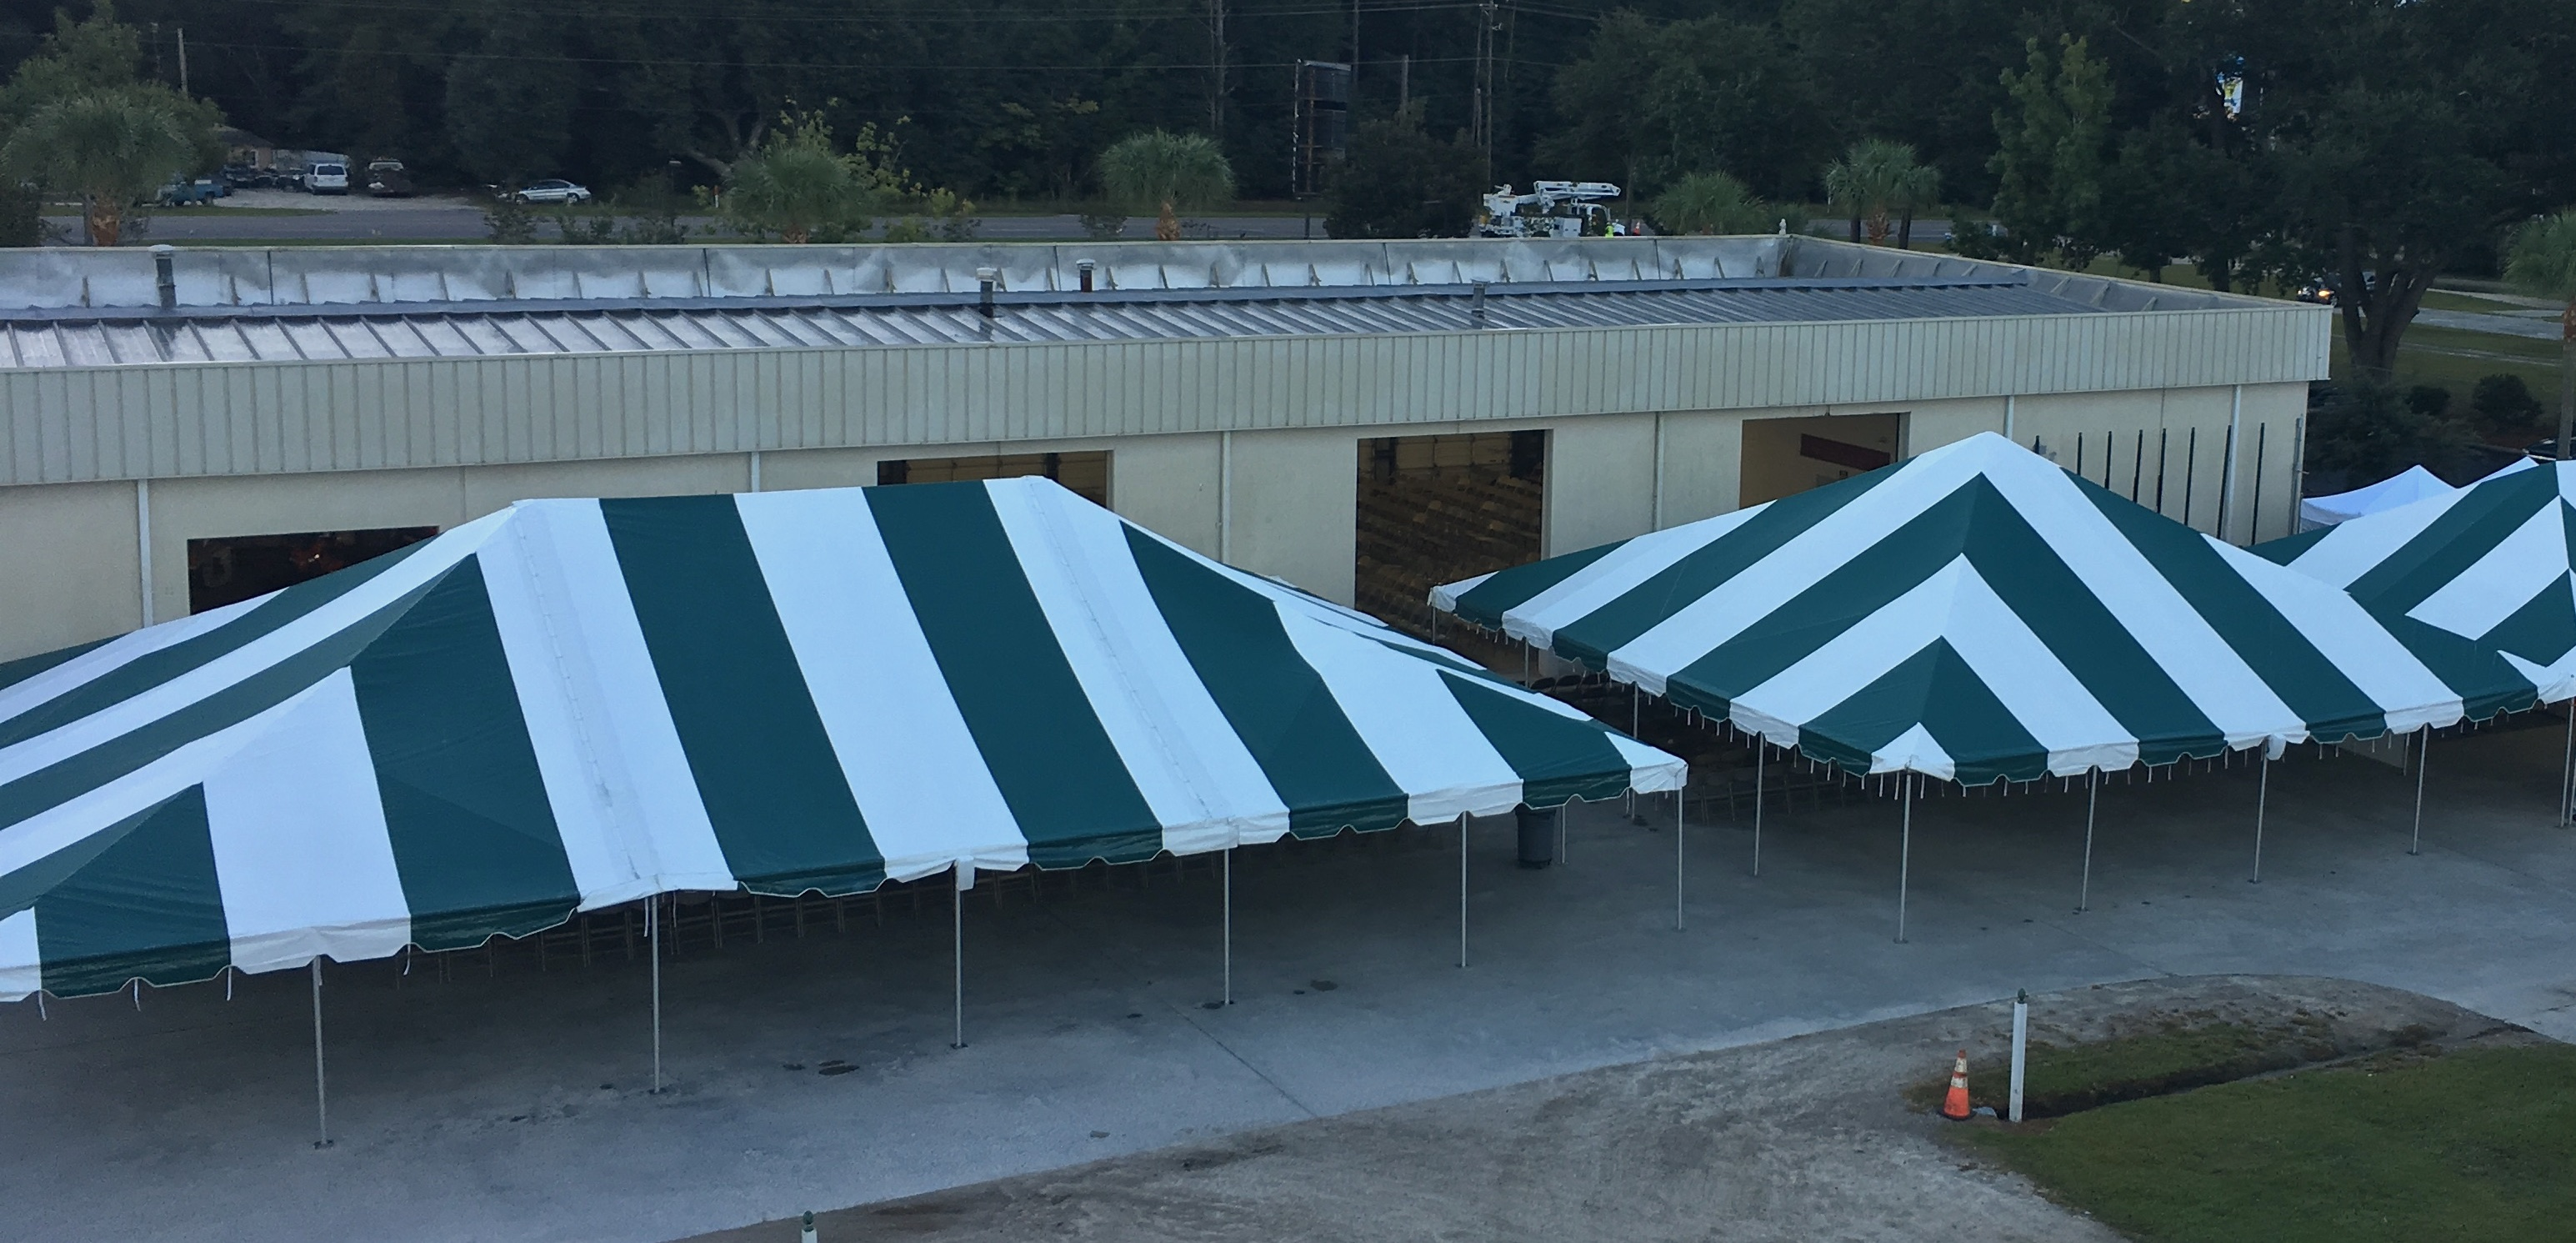 image of coop building with annual meeting tents set up